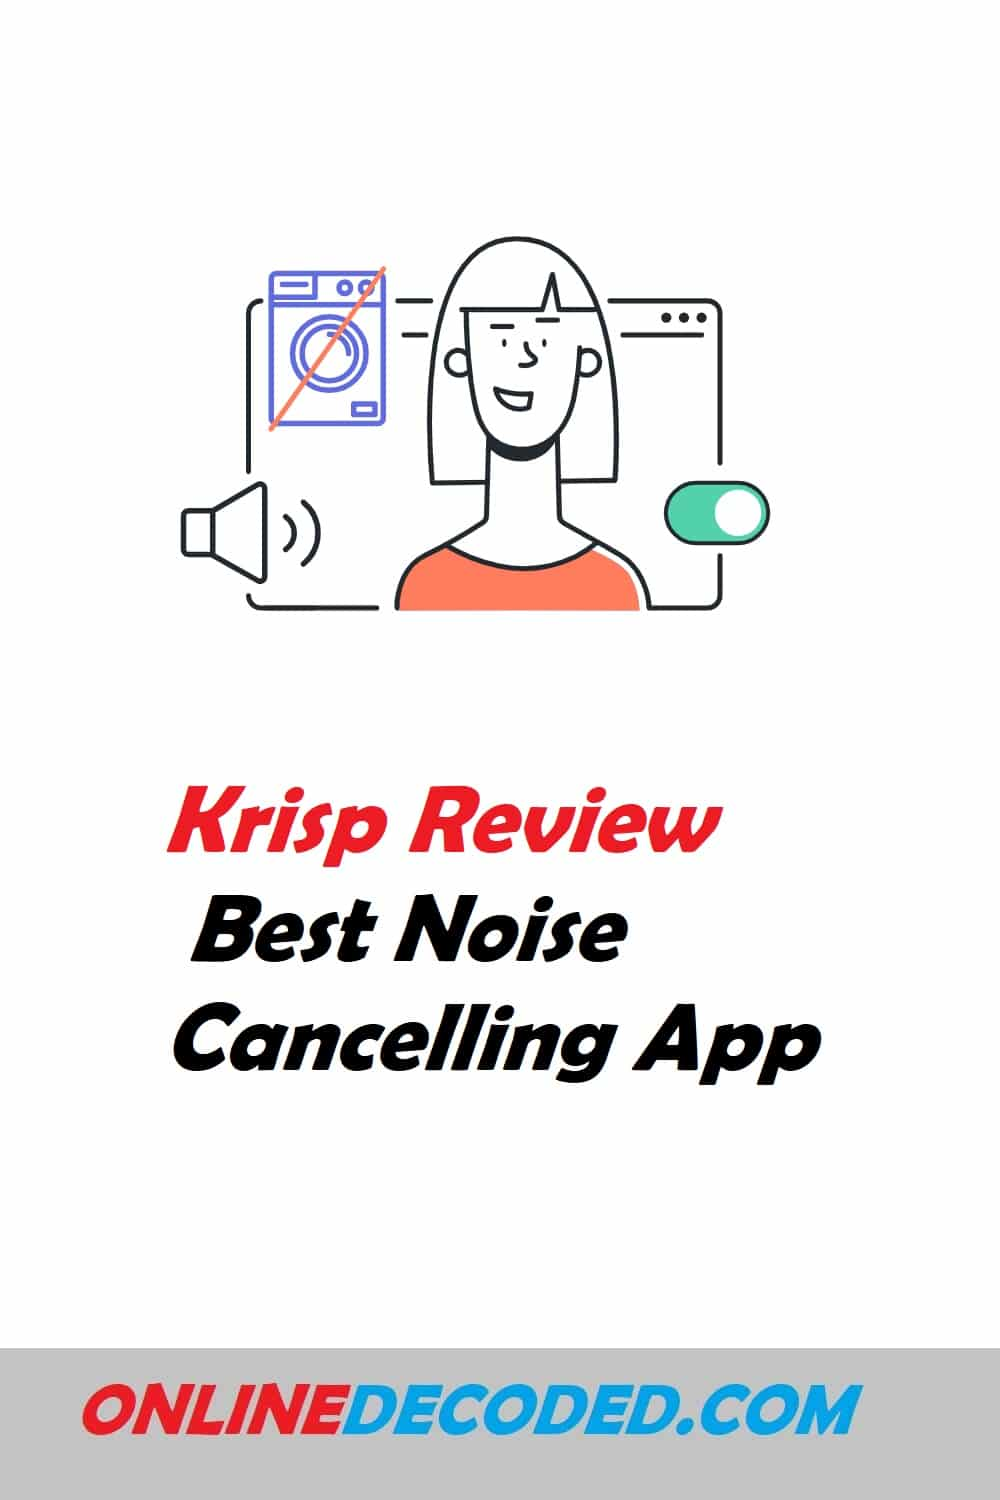 Krisp Review: Best Noise Cancellation App in 2021